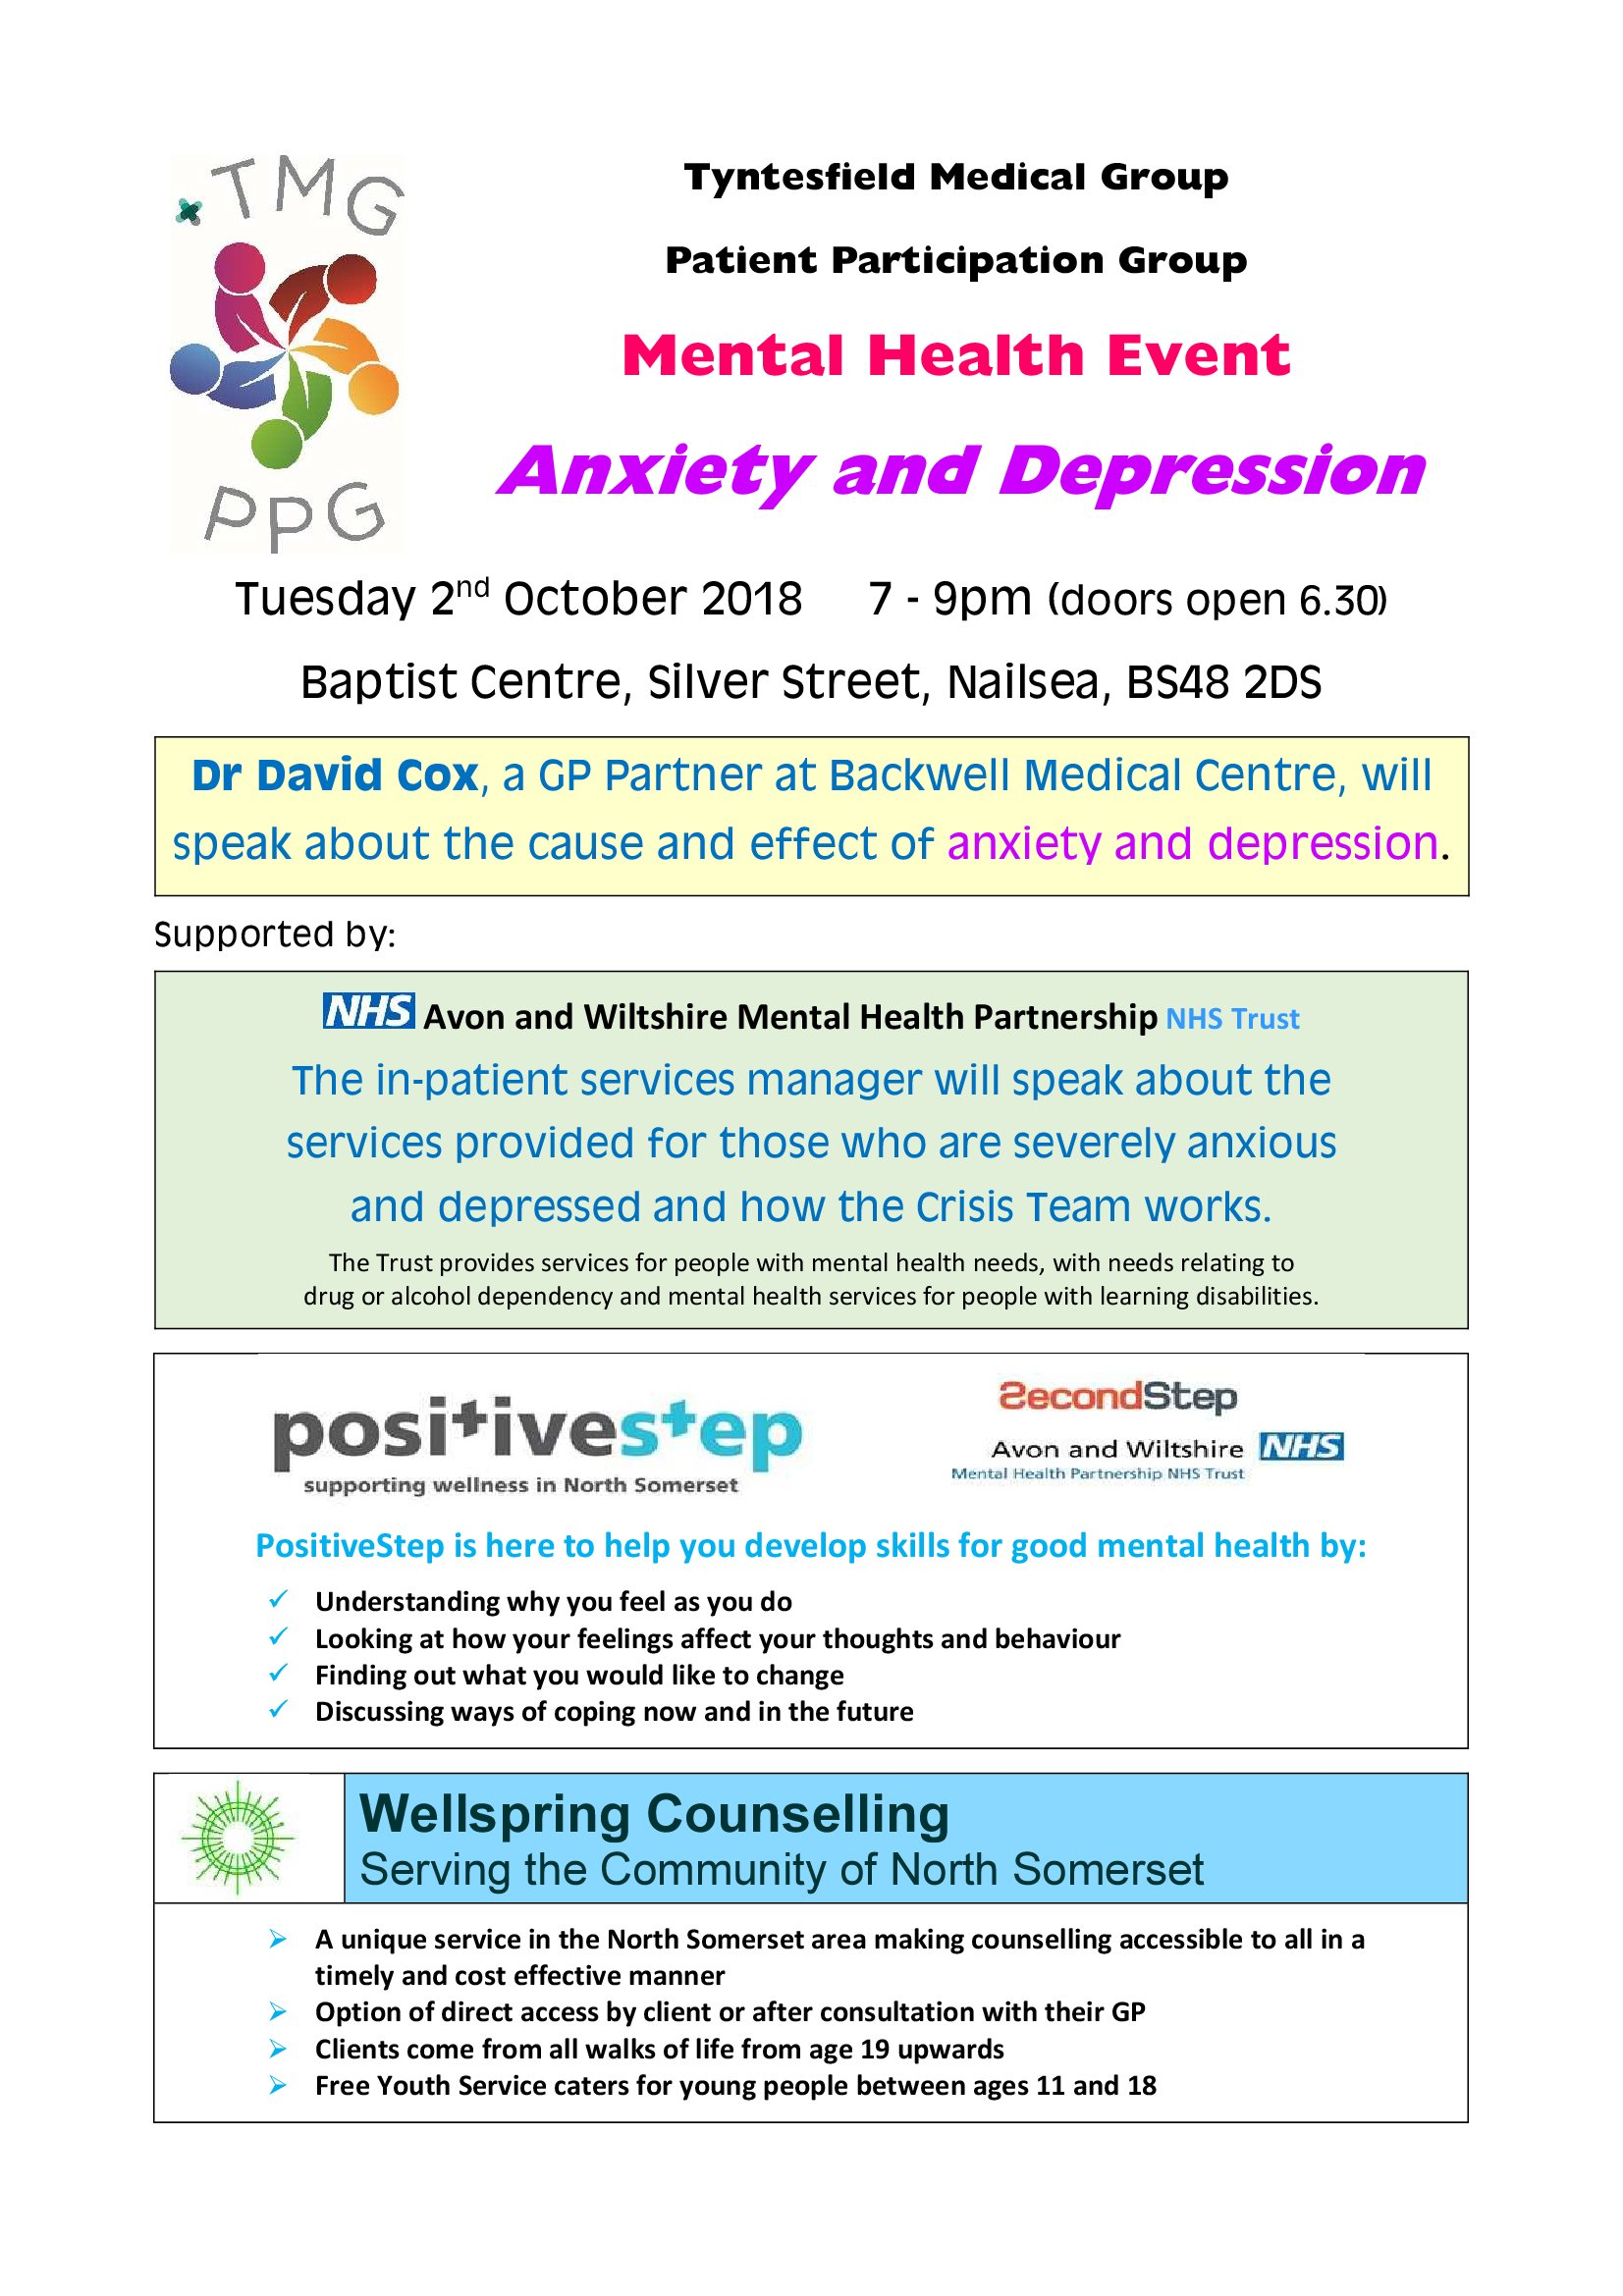 Mental Health Event FINAL VERSION (1).jpg